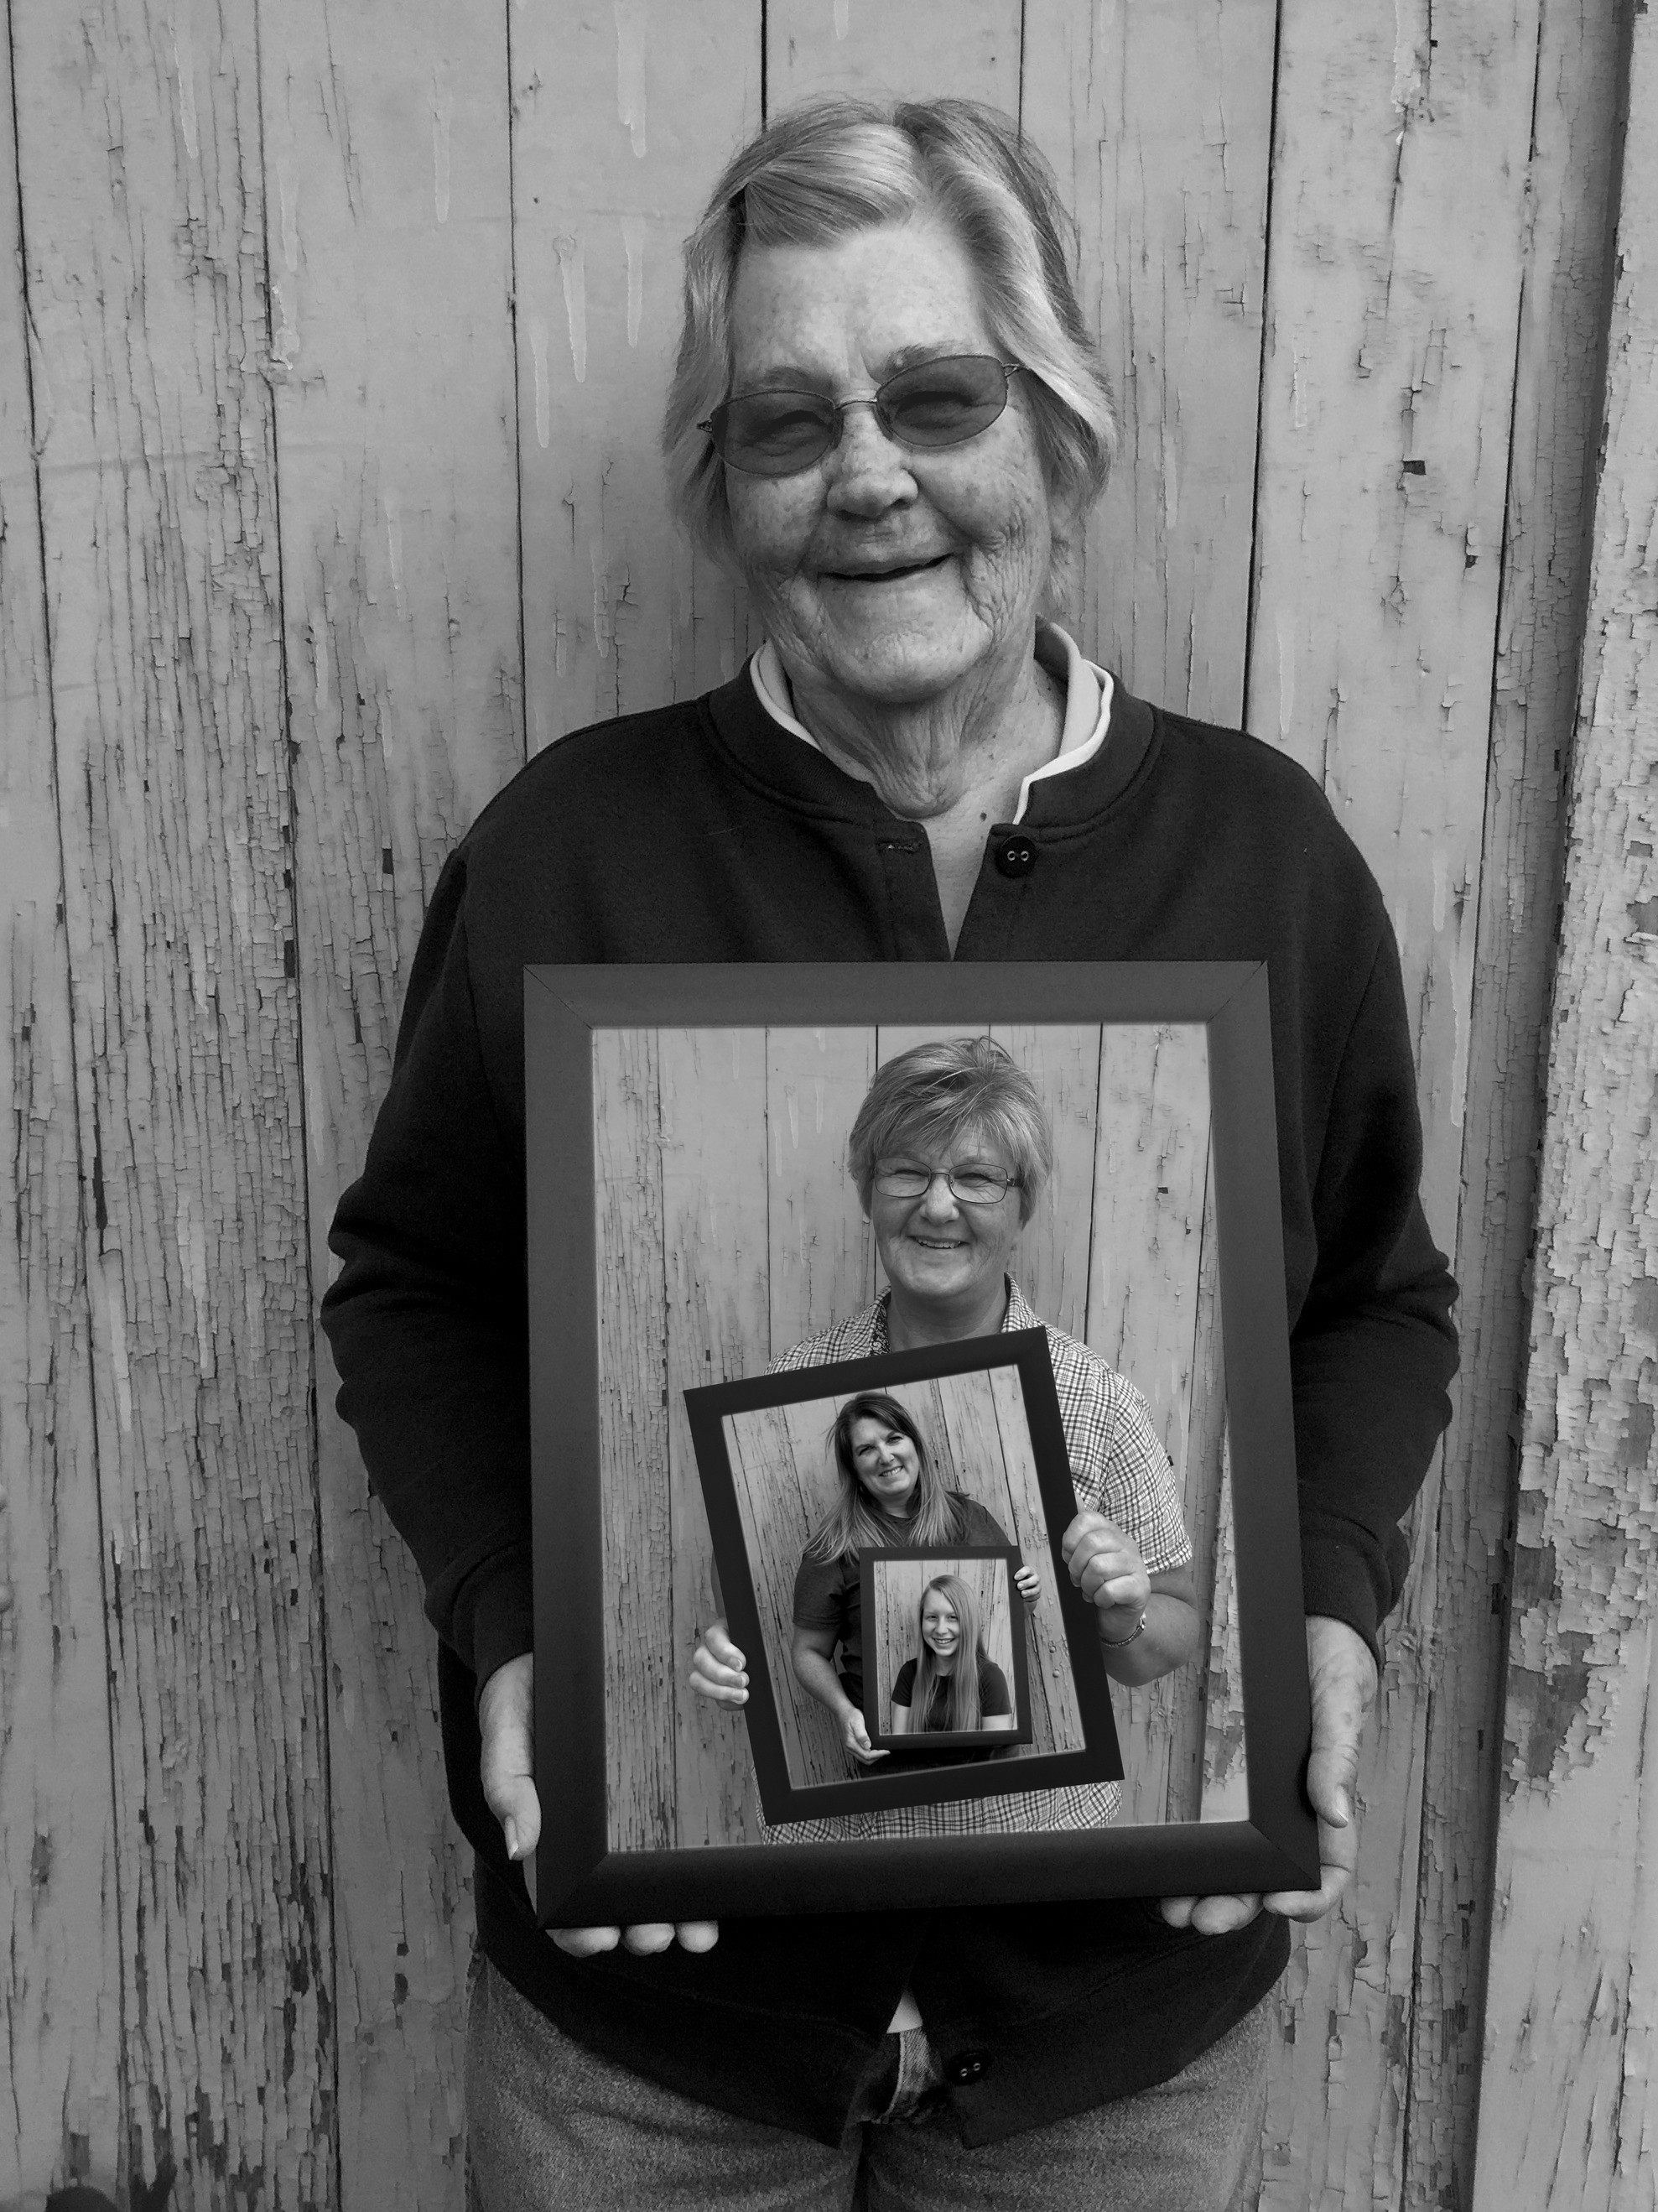 WomenHoldingPhotos Customer Art Spotlight: Four Generations Family Portrait